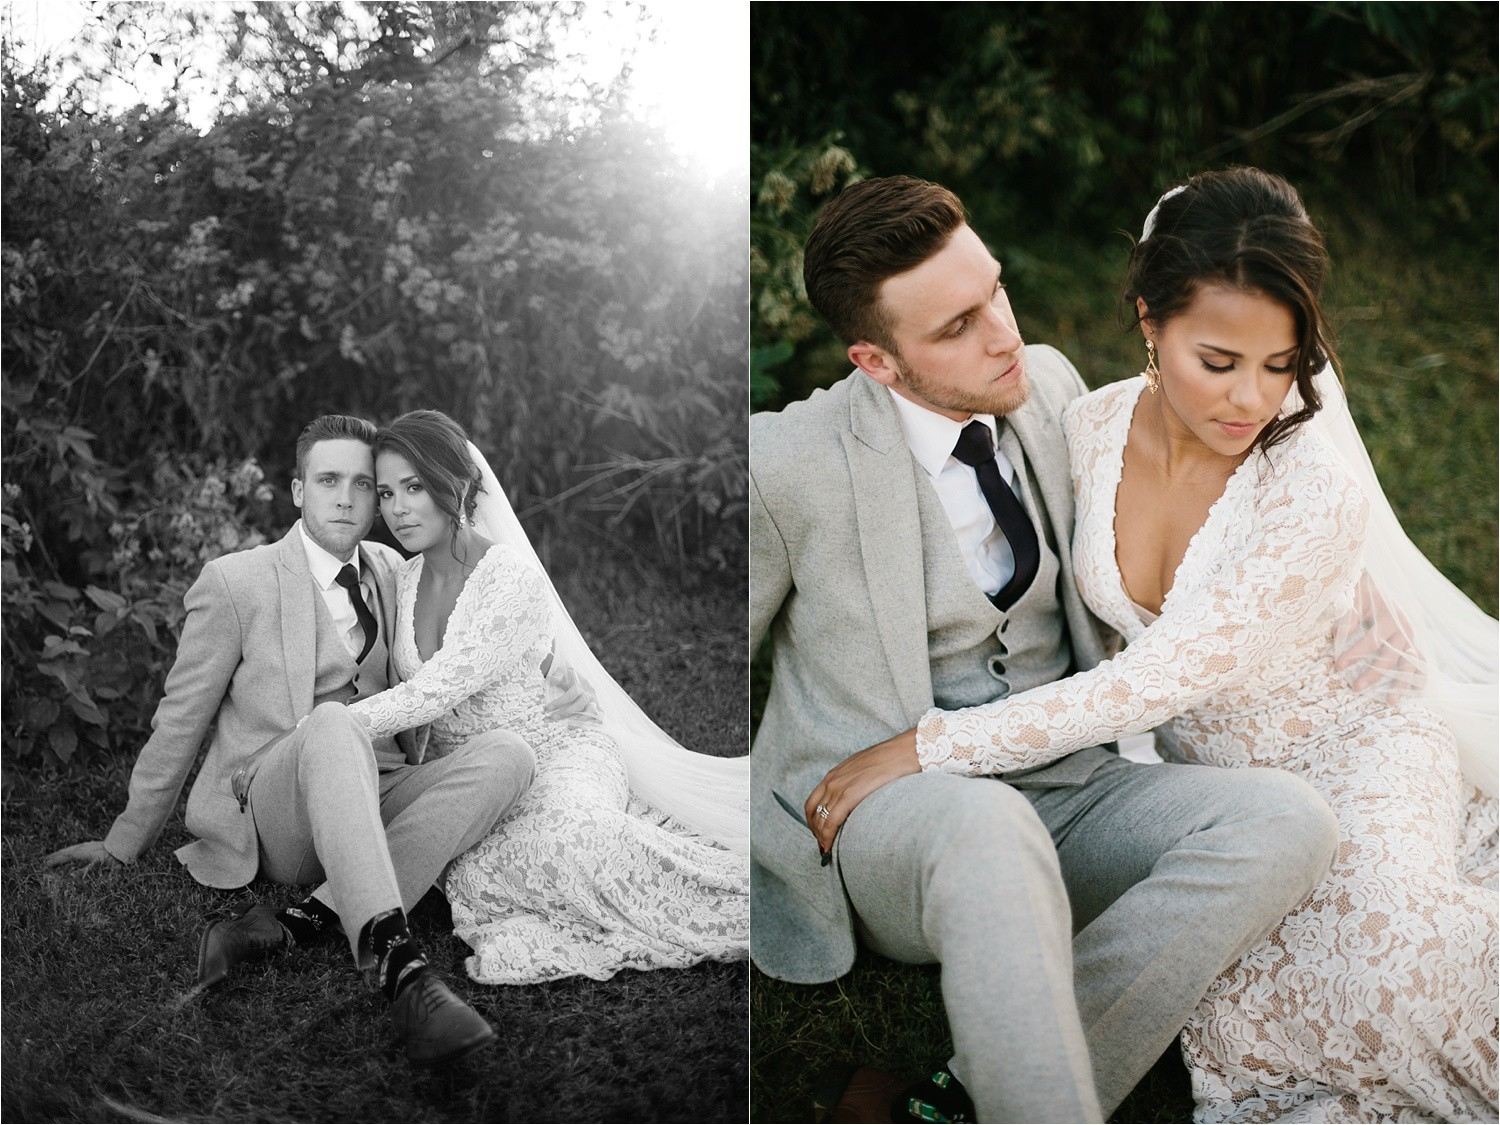 mallory-tyler-__-an-intimate-after-session-at-grapevine-lake-by-north-texas-wedding-photographer-rachel-meagan-photography-_-19